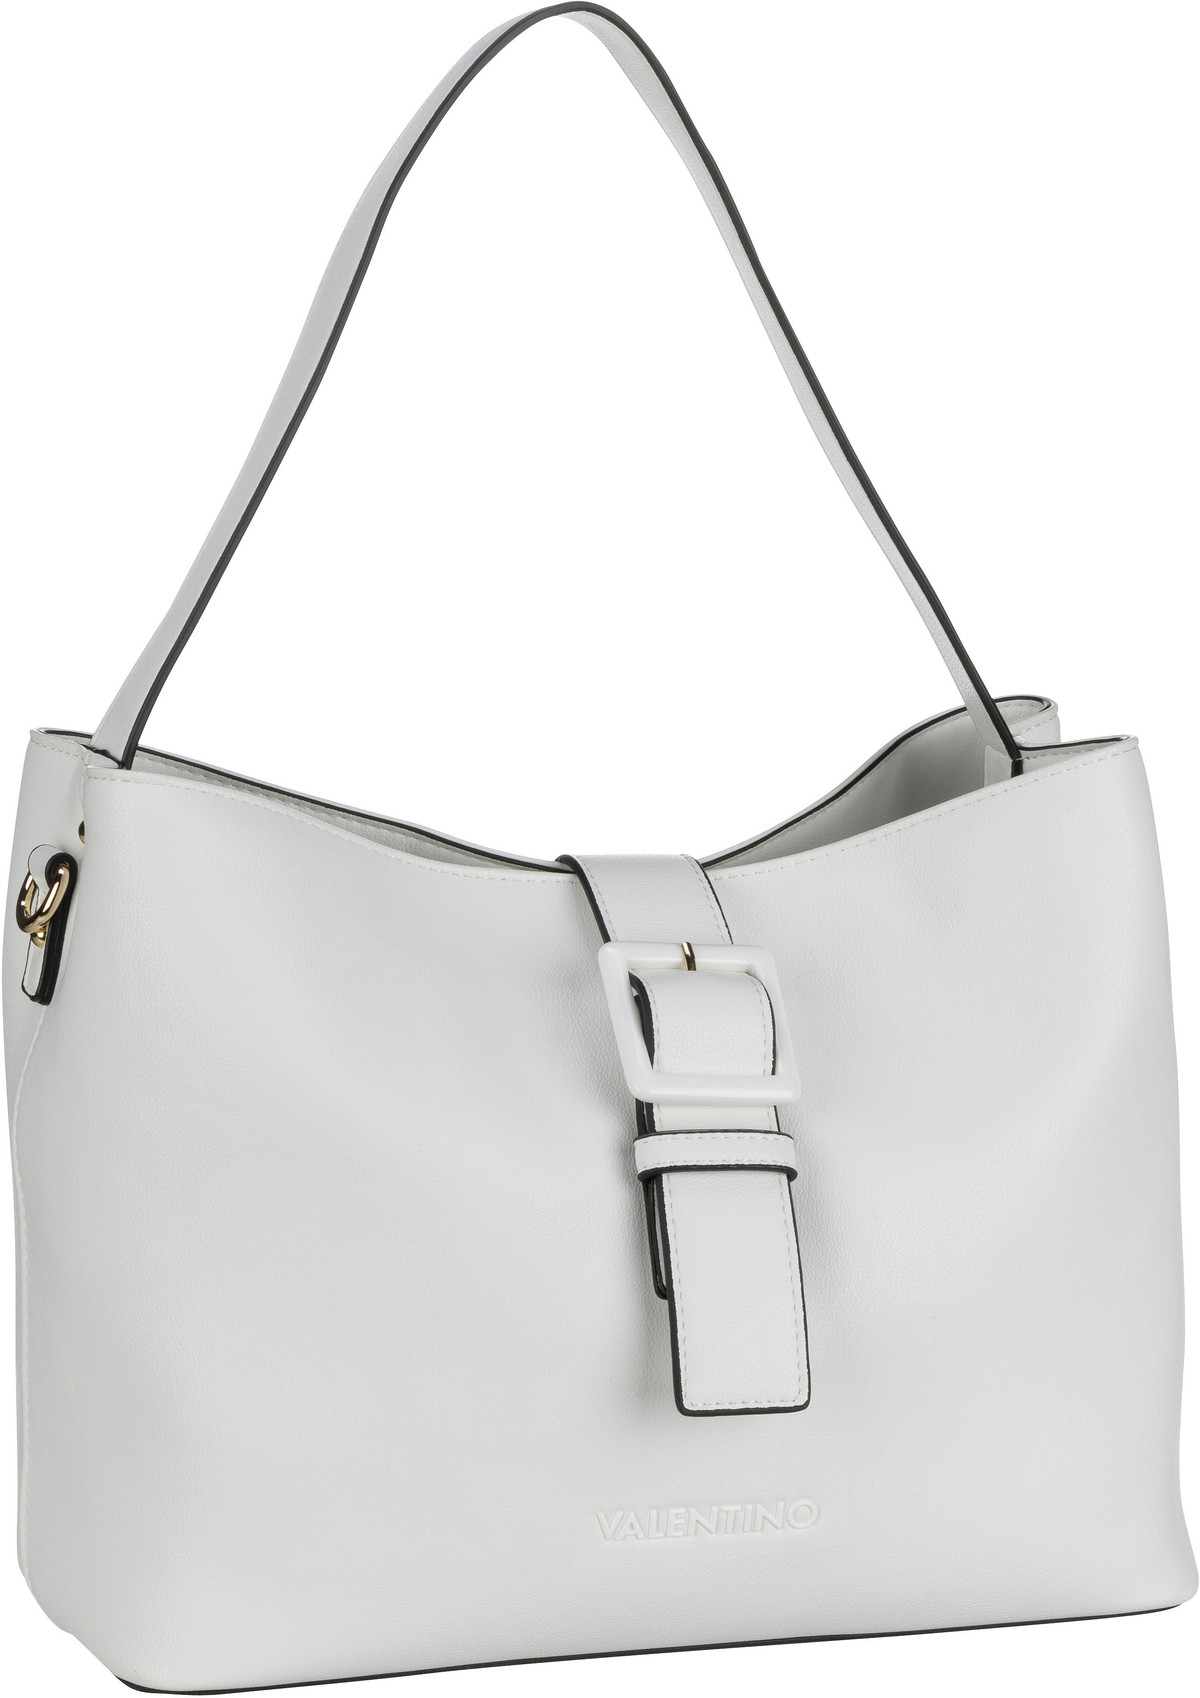 Bags Handtasche Angelo Sacca H02 Bianco